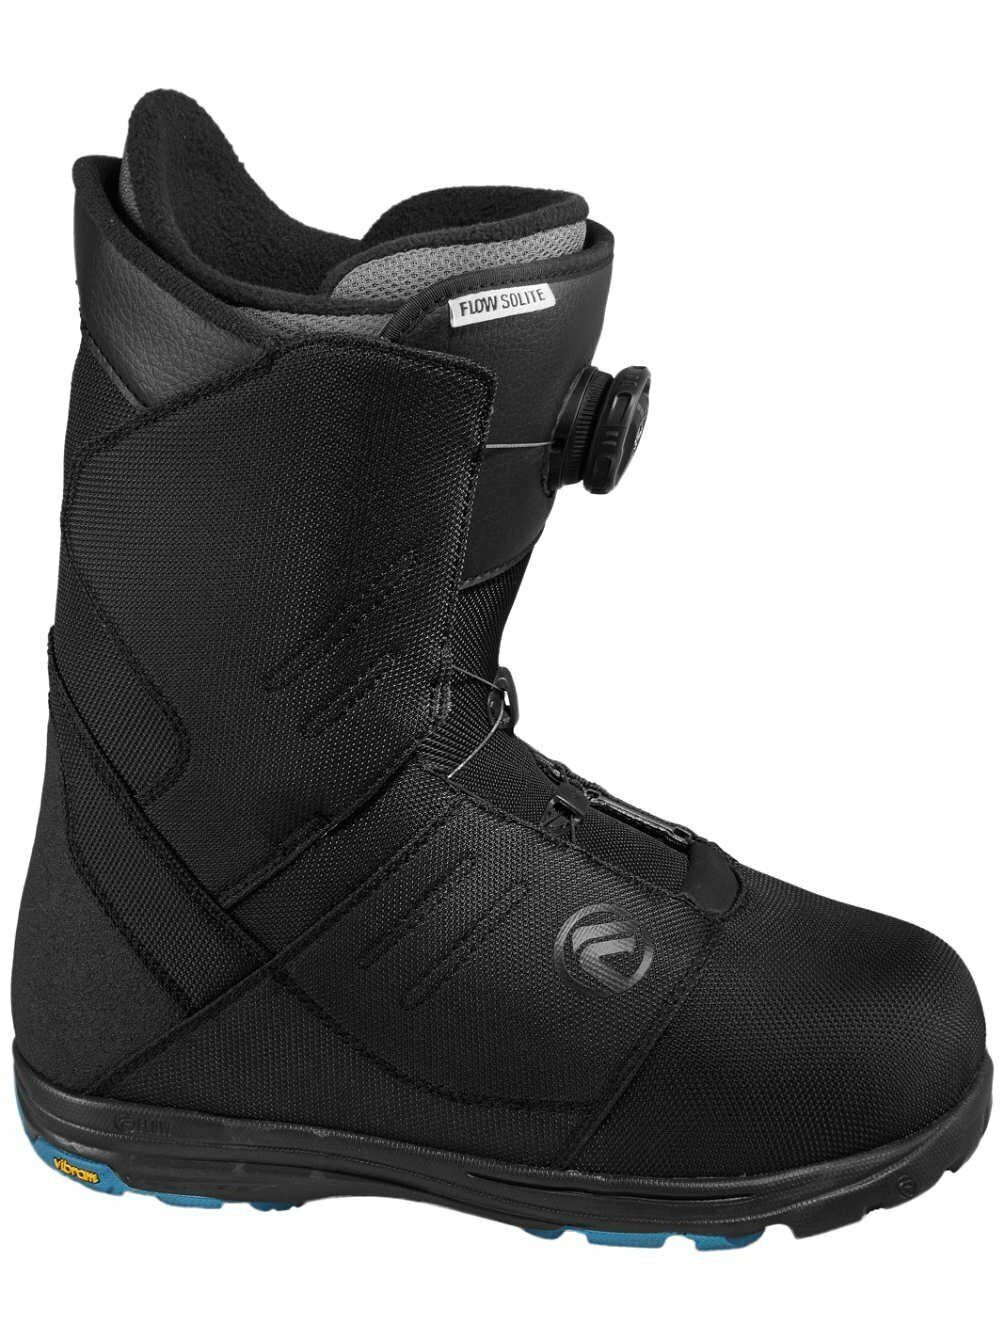 Hombres Snowboard botas Flow Solite Coile Snowboardboats Negro 45,5 (US   12)